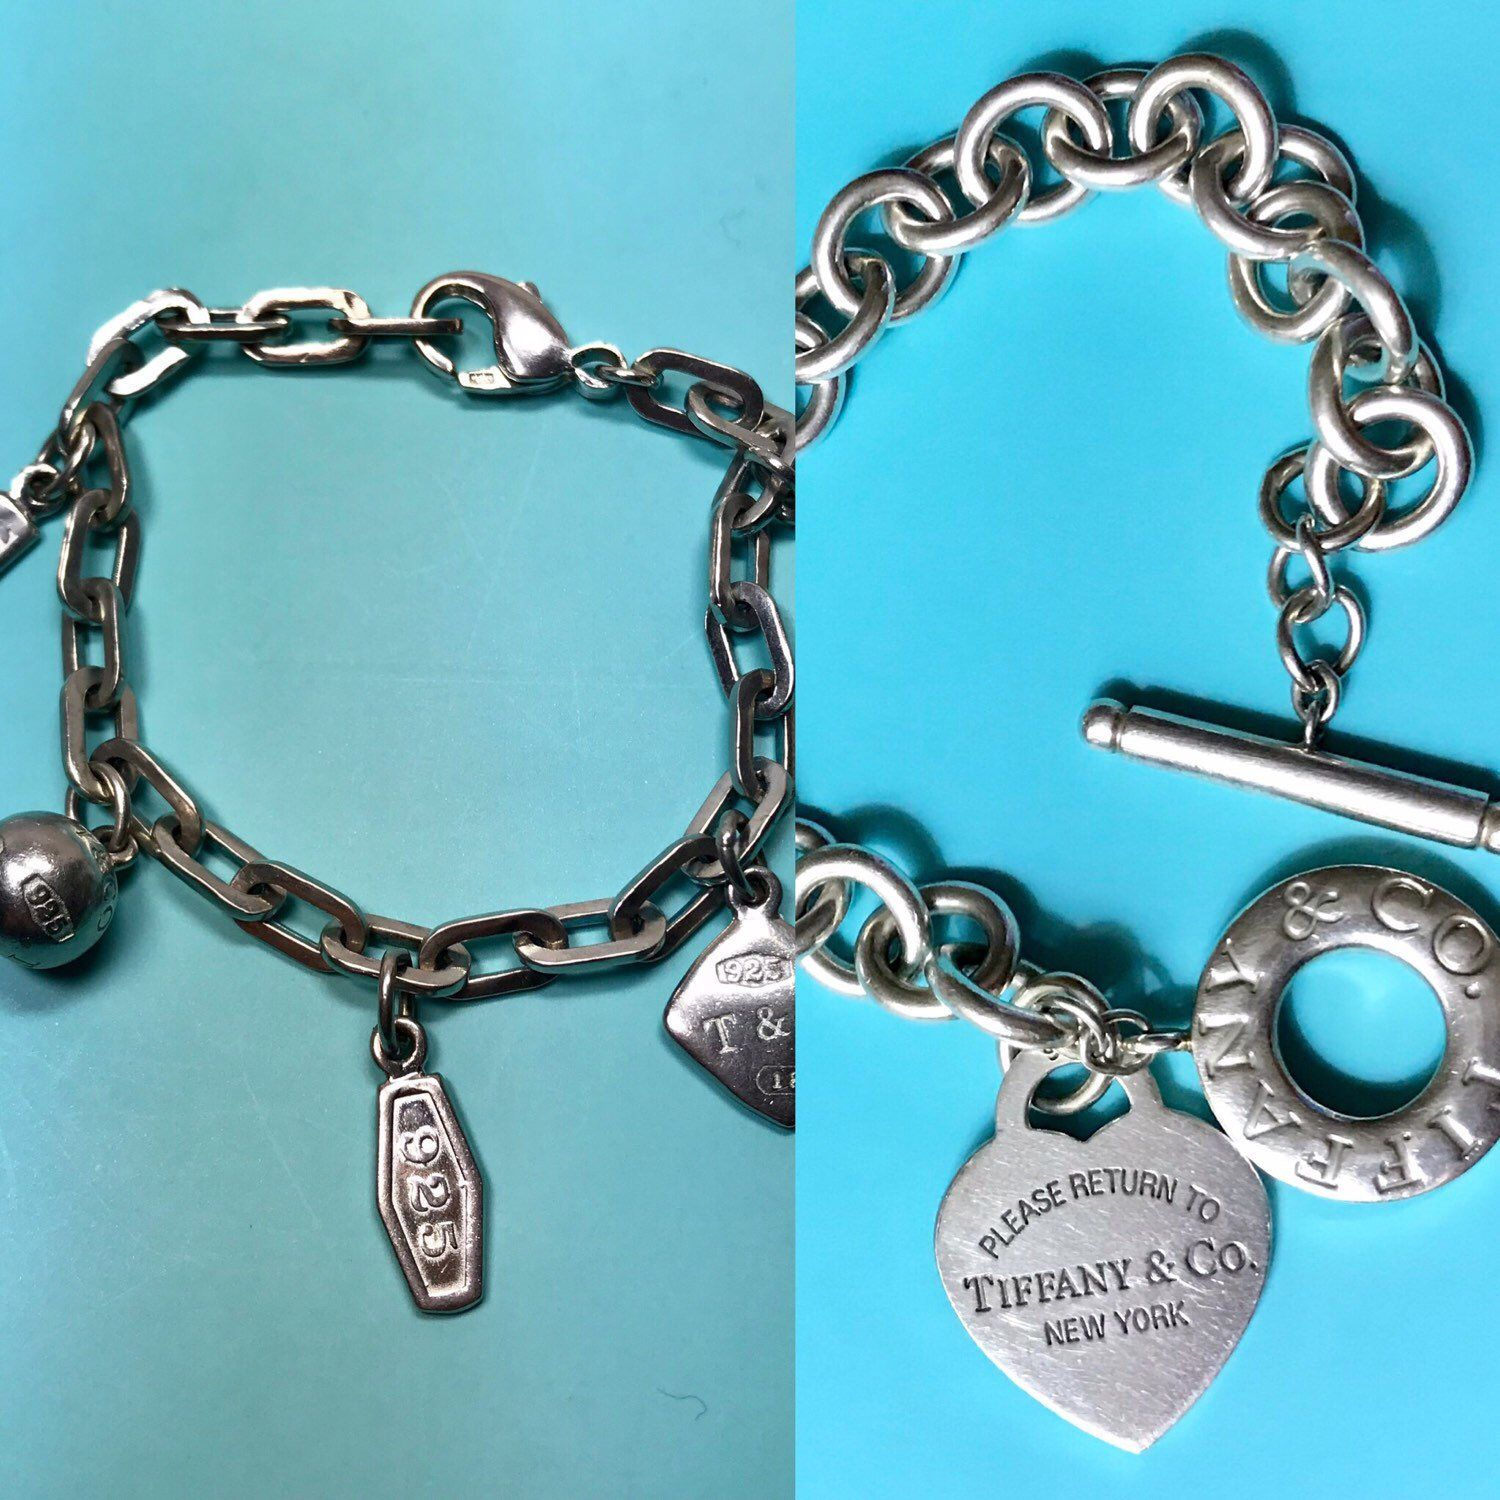 Looking For Vintage Tiffany Co Jewelry We Have Several Authentic Tiffany Sterling Silver Br Tiffany And Co Jewelry Sterling Silver Bracelets Vintage Tiffany